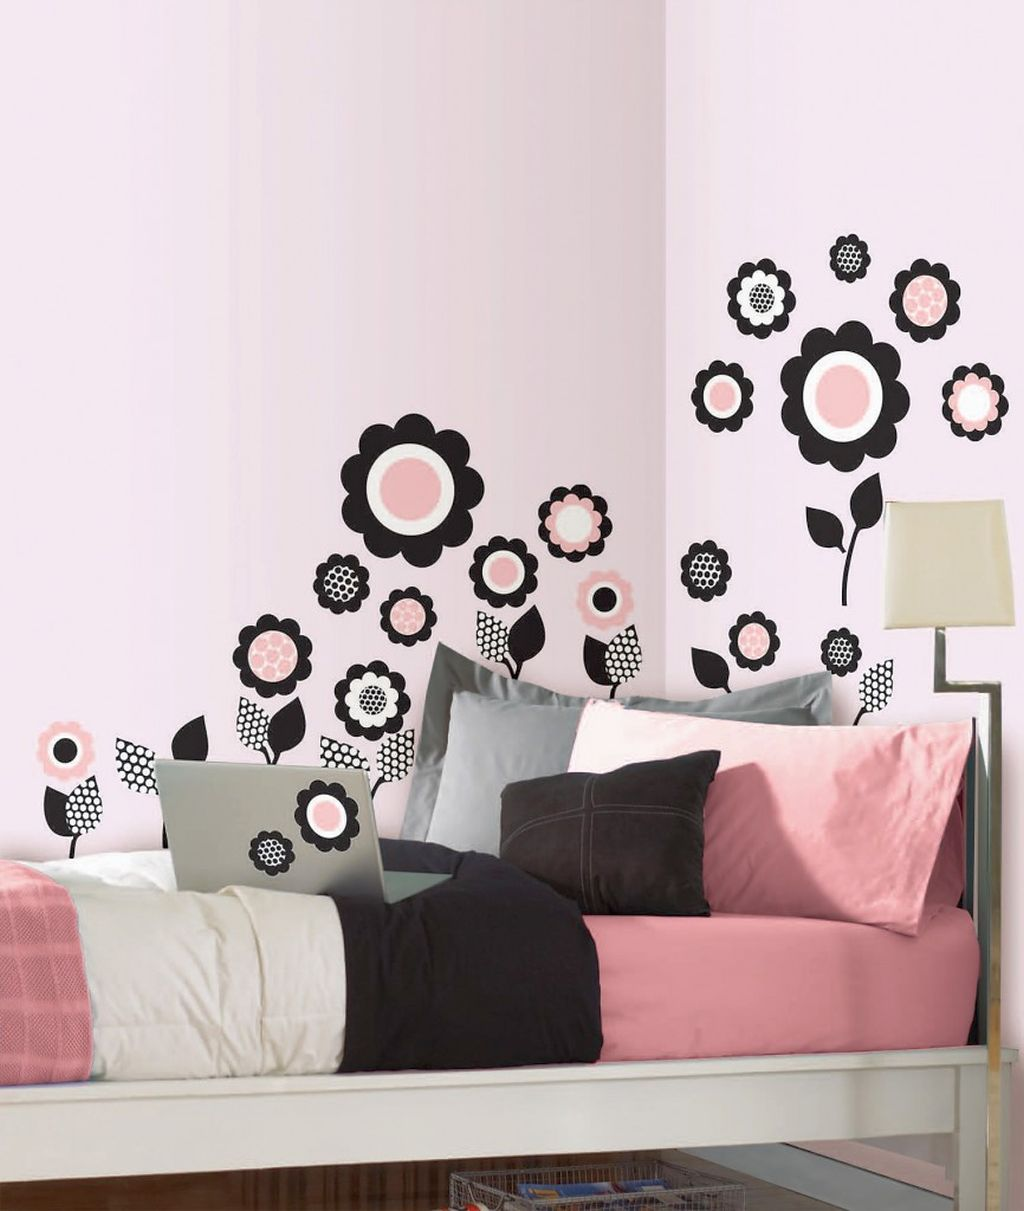 Cute Flowers For Pink And Black Wall Decor